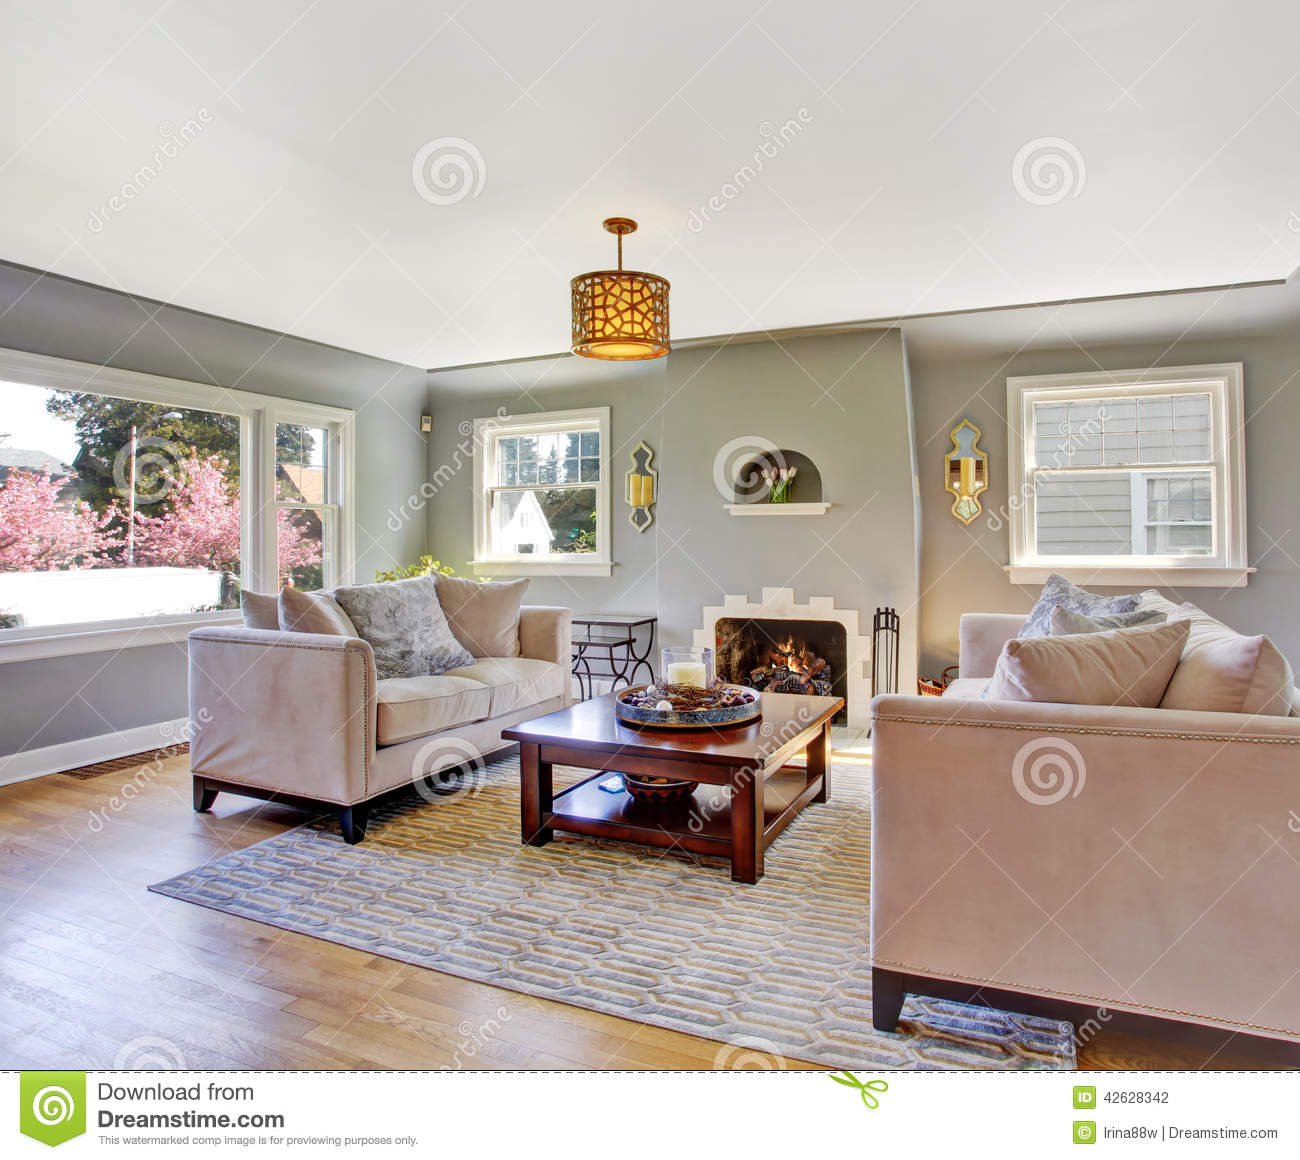 light grey living room with white sofas stock photo image 42628347 light grey living room with white sofas and fireplace stock photography